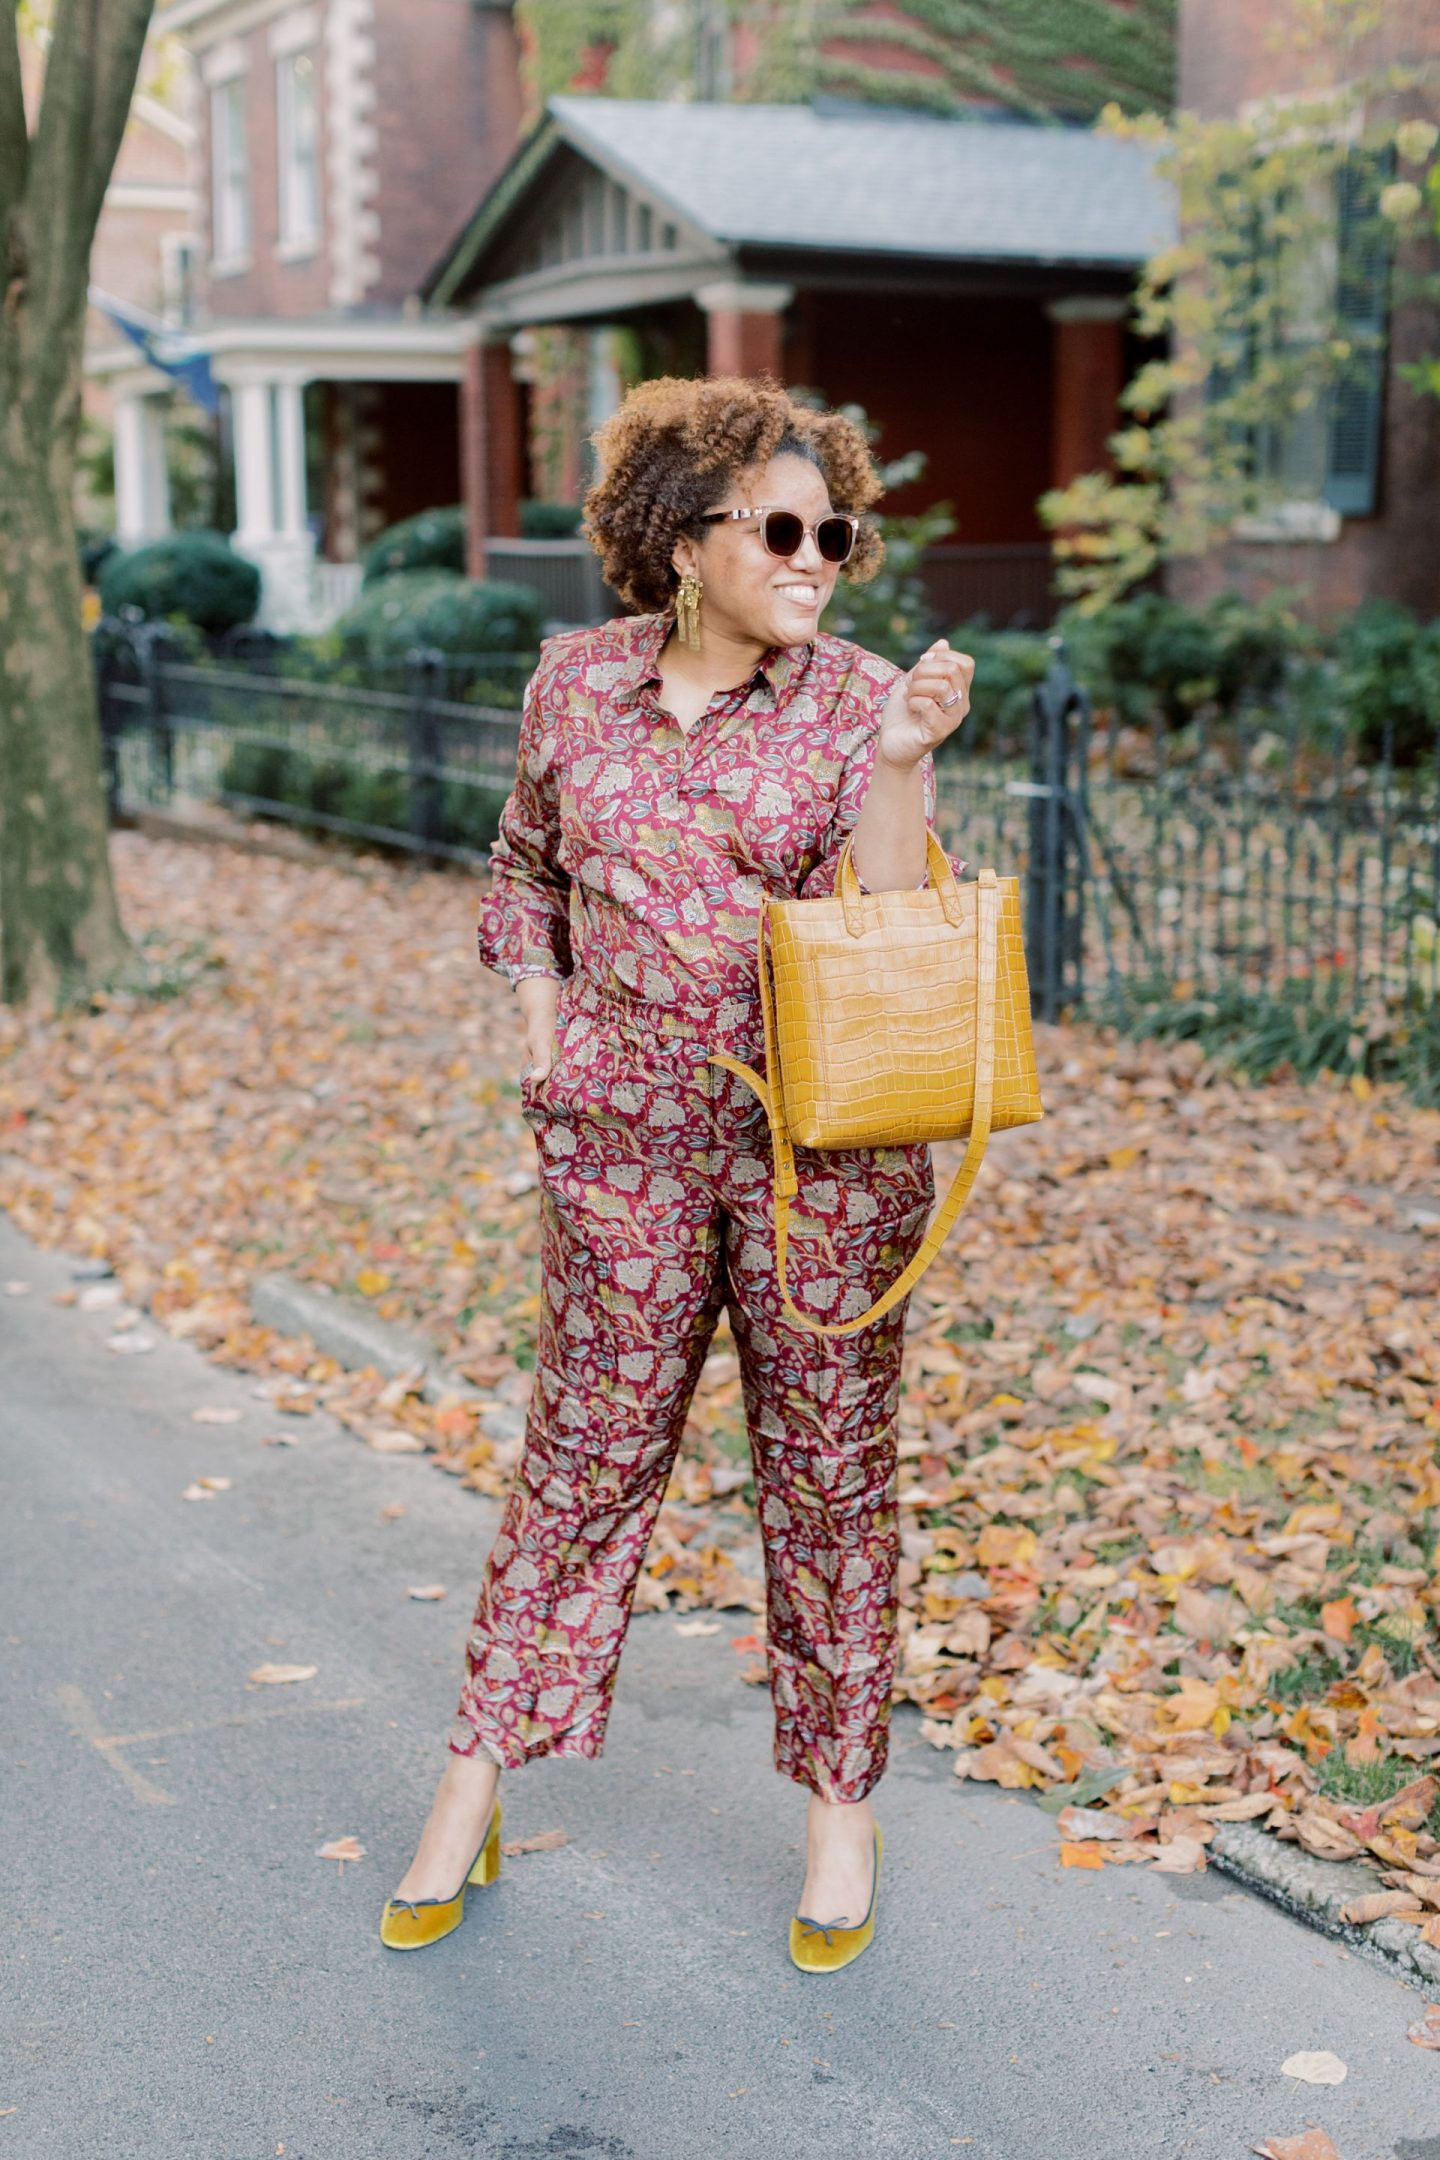 Fall Prints by popular Kentucky fashion blog, Really Rynetta: image of a woman wearing a J.Crew Collection silk twill shirt in jungle cat print, J.Crew Pull-on silk-twill pant in jungle cat print, Nordstrom Marc Fischer LTD Yulunda Pump, Kendra Scott Holland Statement Earrings in Vintage Gold, and holding a Madewell The Small Transport Crossbody bag.